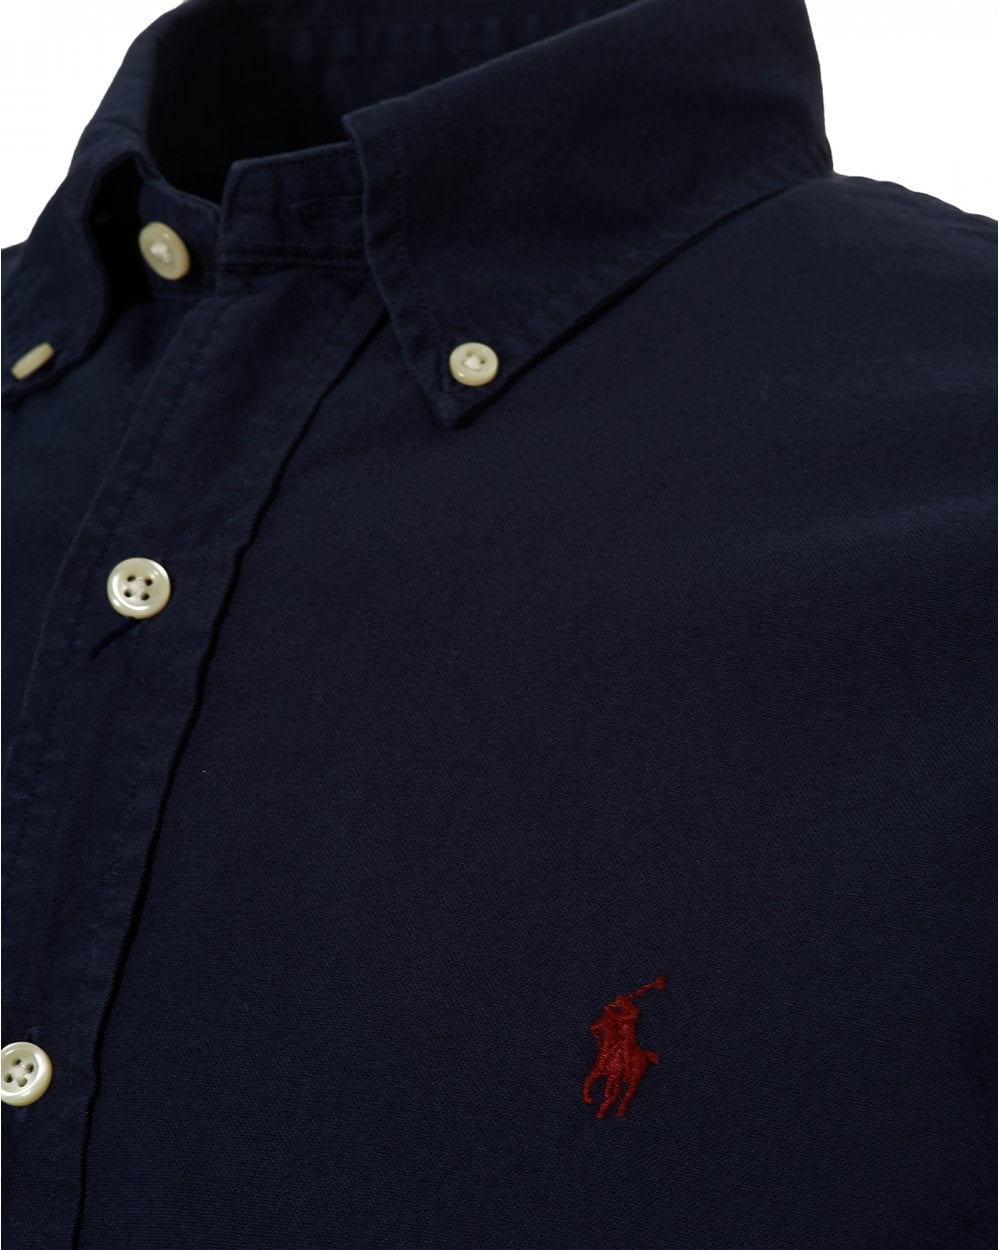 293fd60d211 Ralph Lauren Mens Oxford Button Down Slim Fit Navy Blue Shirt